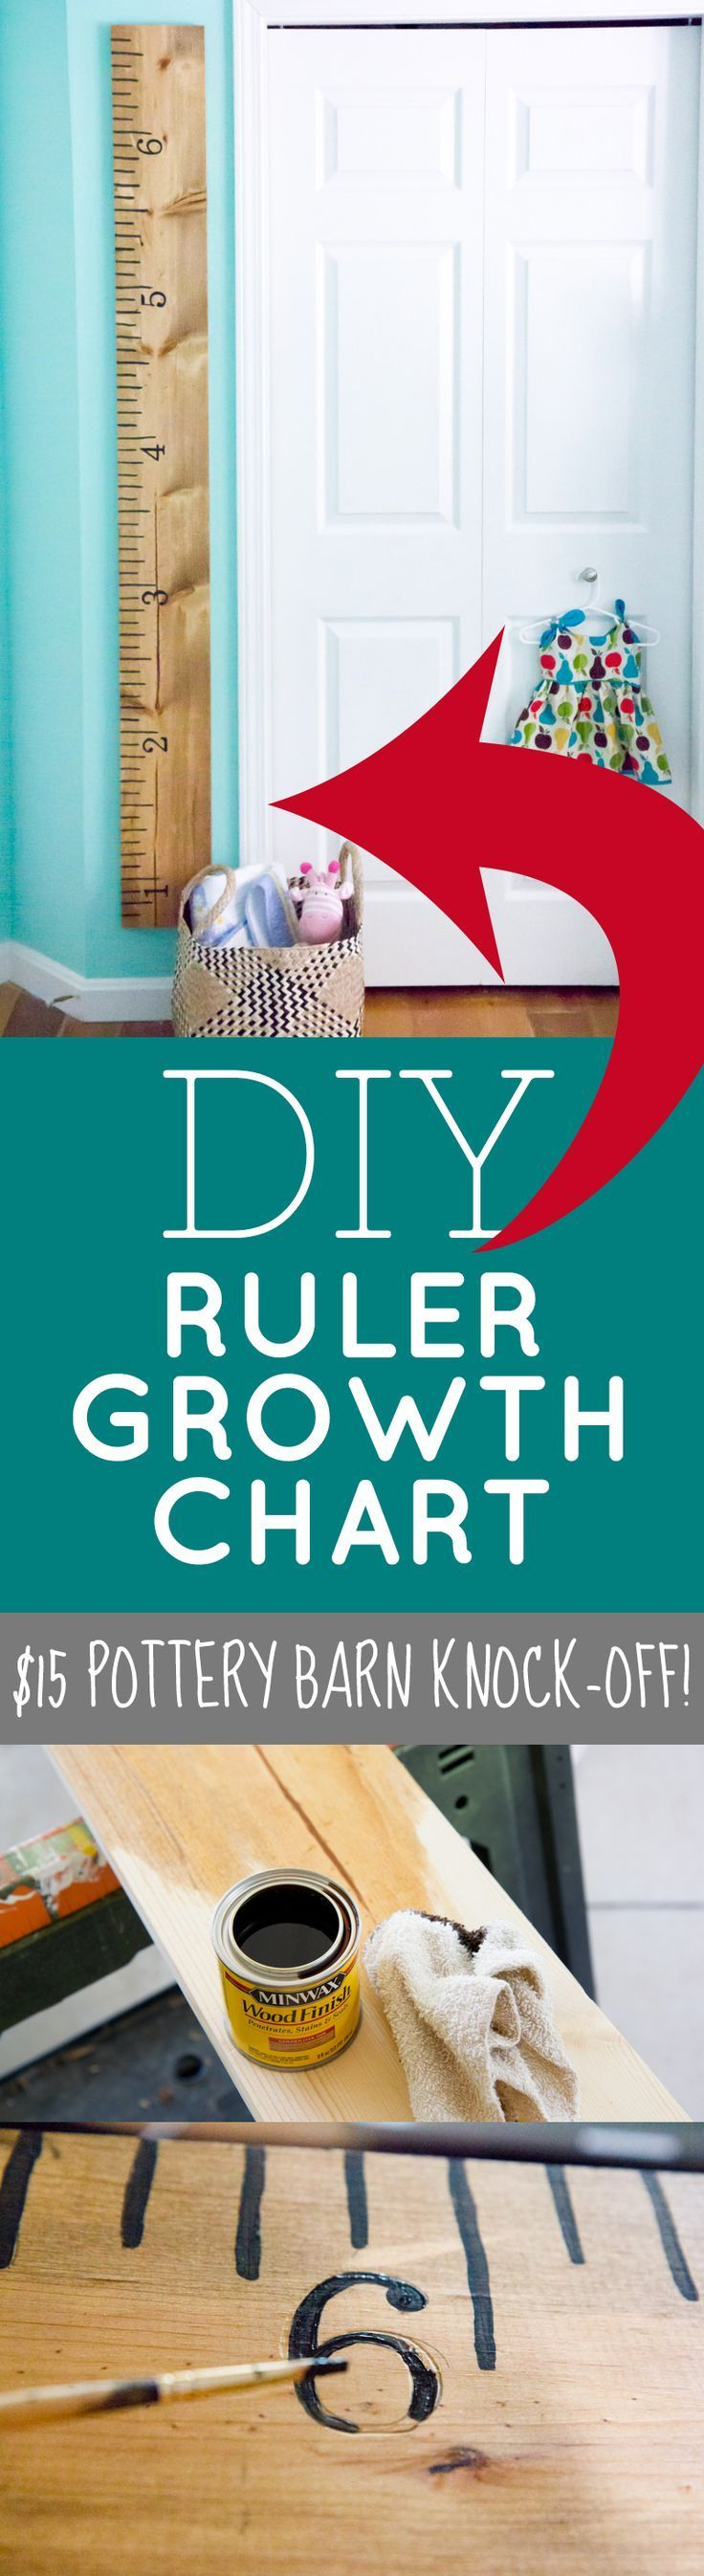 DIY Ruler Growth Chart  Such an easy craft that you can DIY! Sweet addition to any home with kids growing in it...